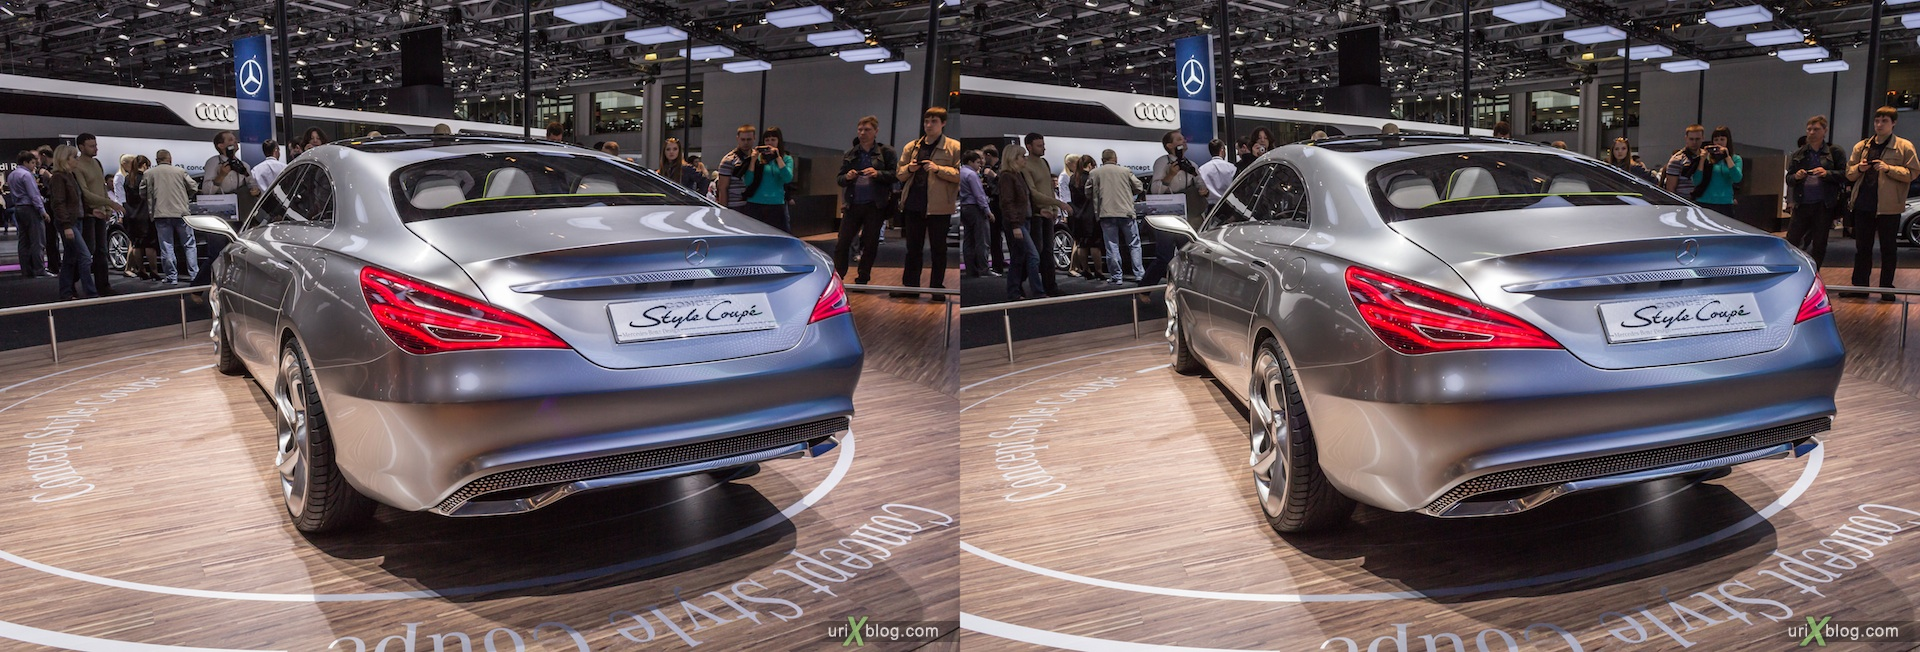 2012, Mercedes Benz Style Coupe, Moscow International Automobile Salon, auto show, 3D, stereo pair, cross-eyed, crossview